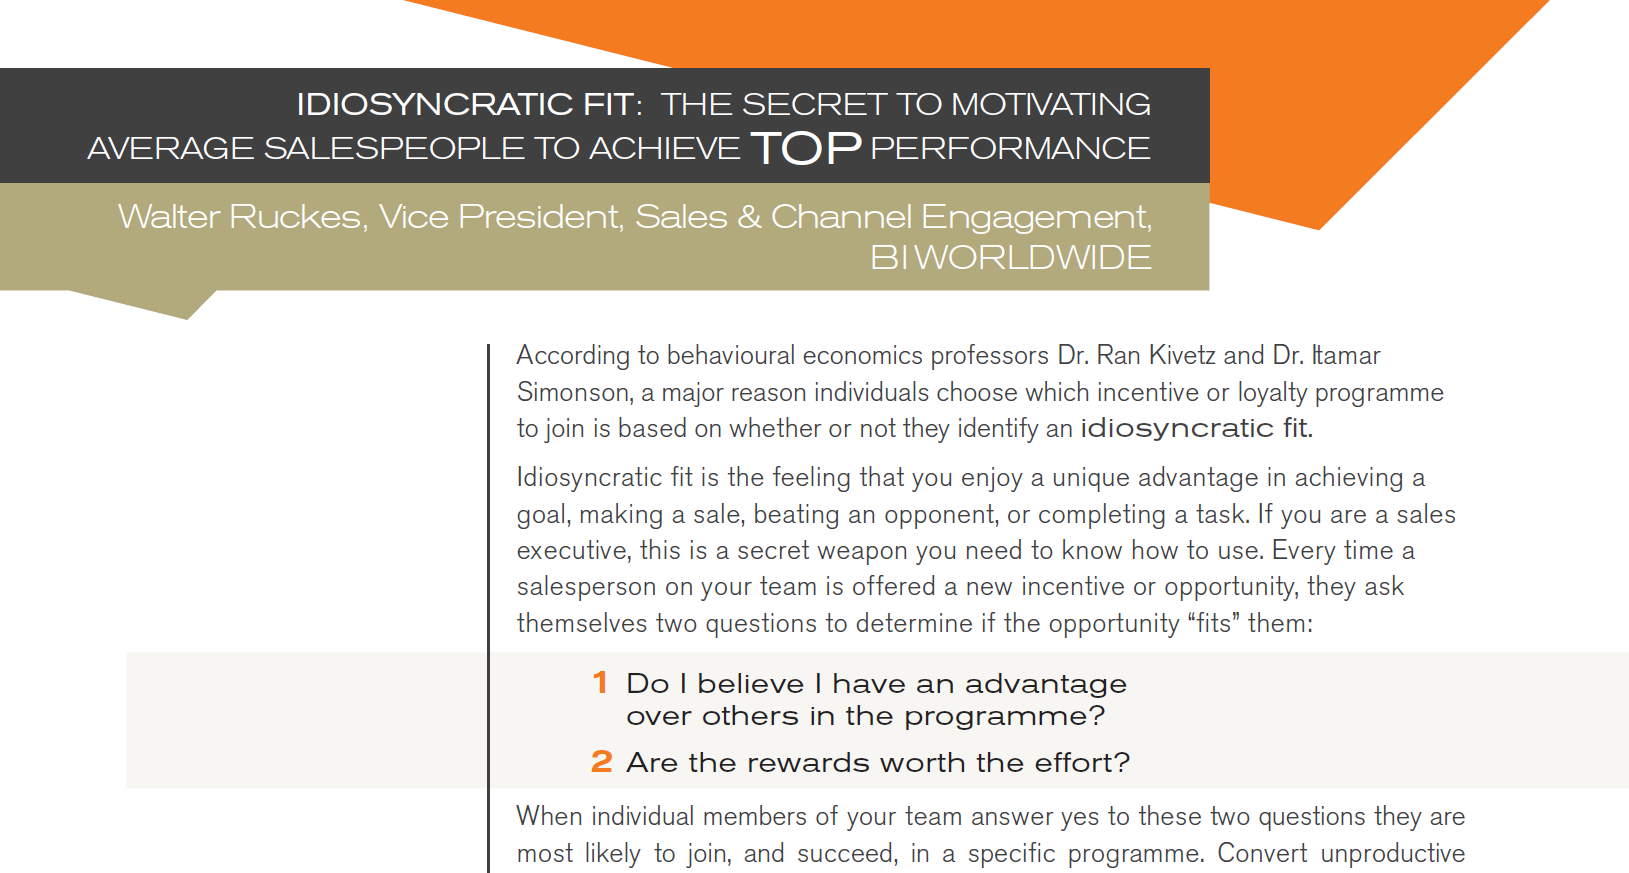 Idiosyncratic fit: Motivating Sales People